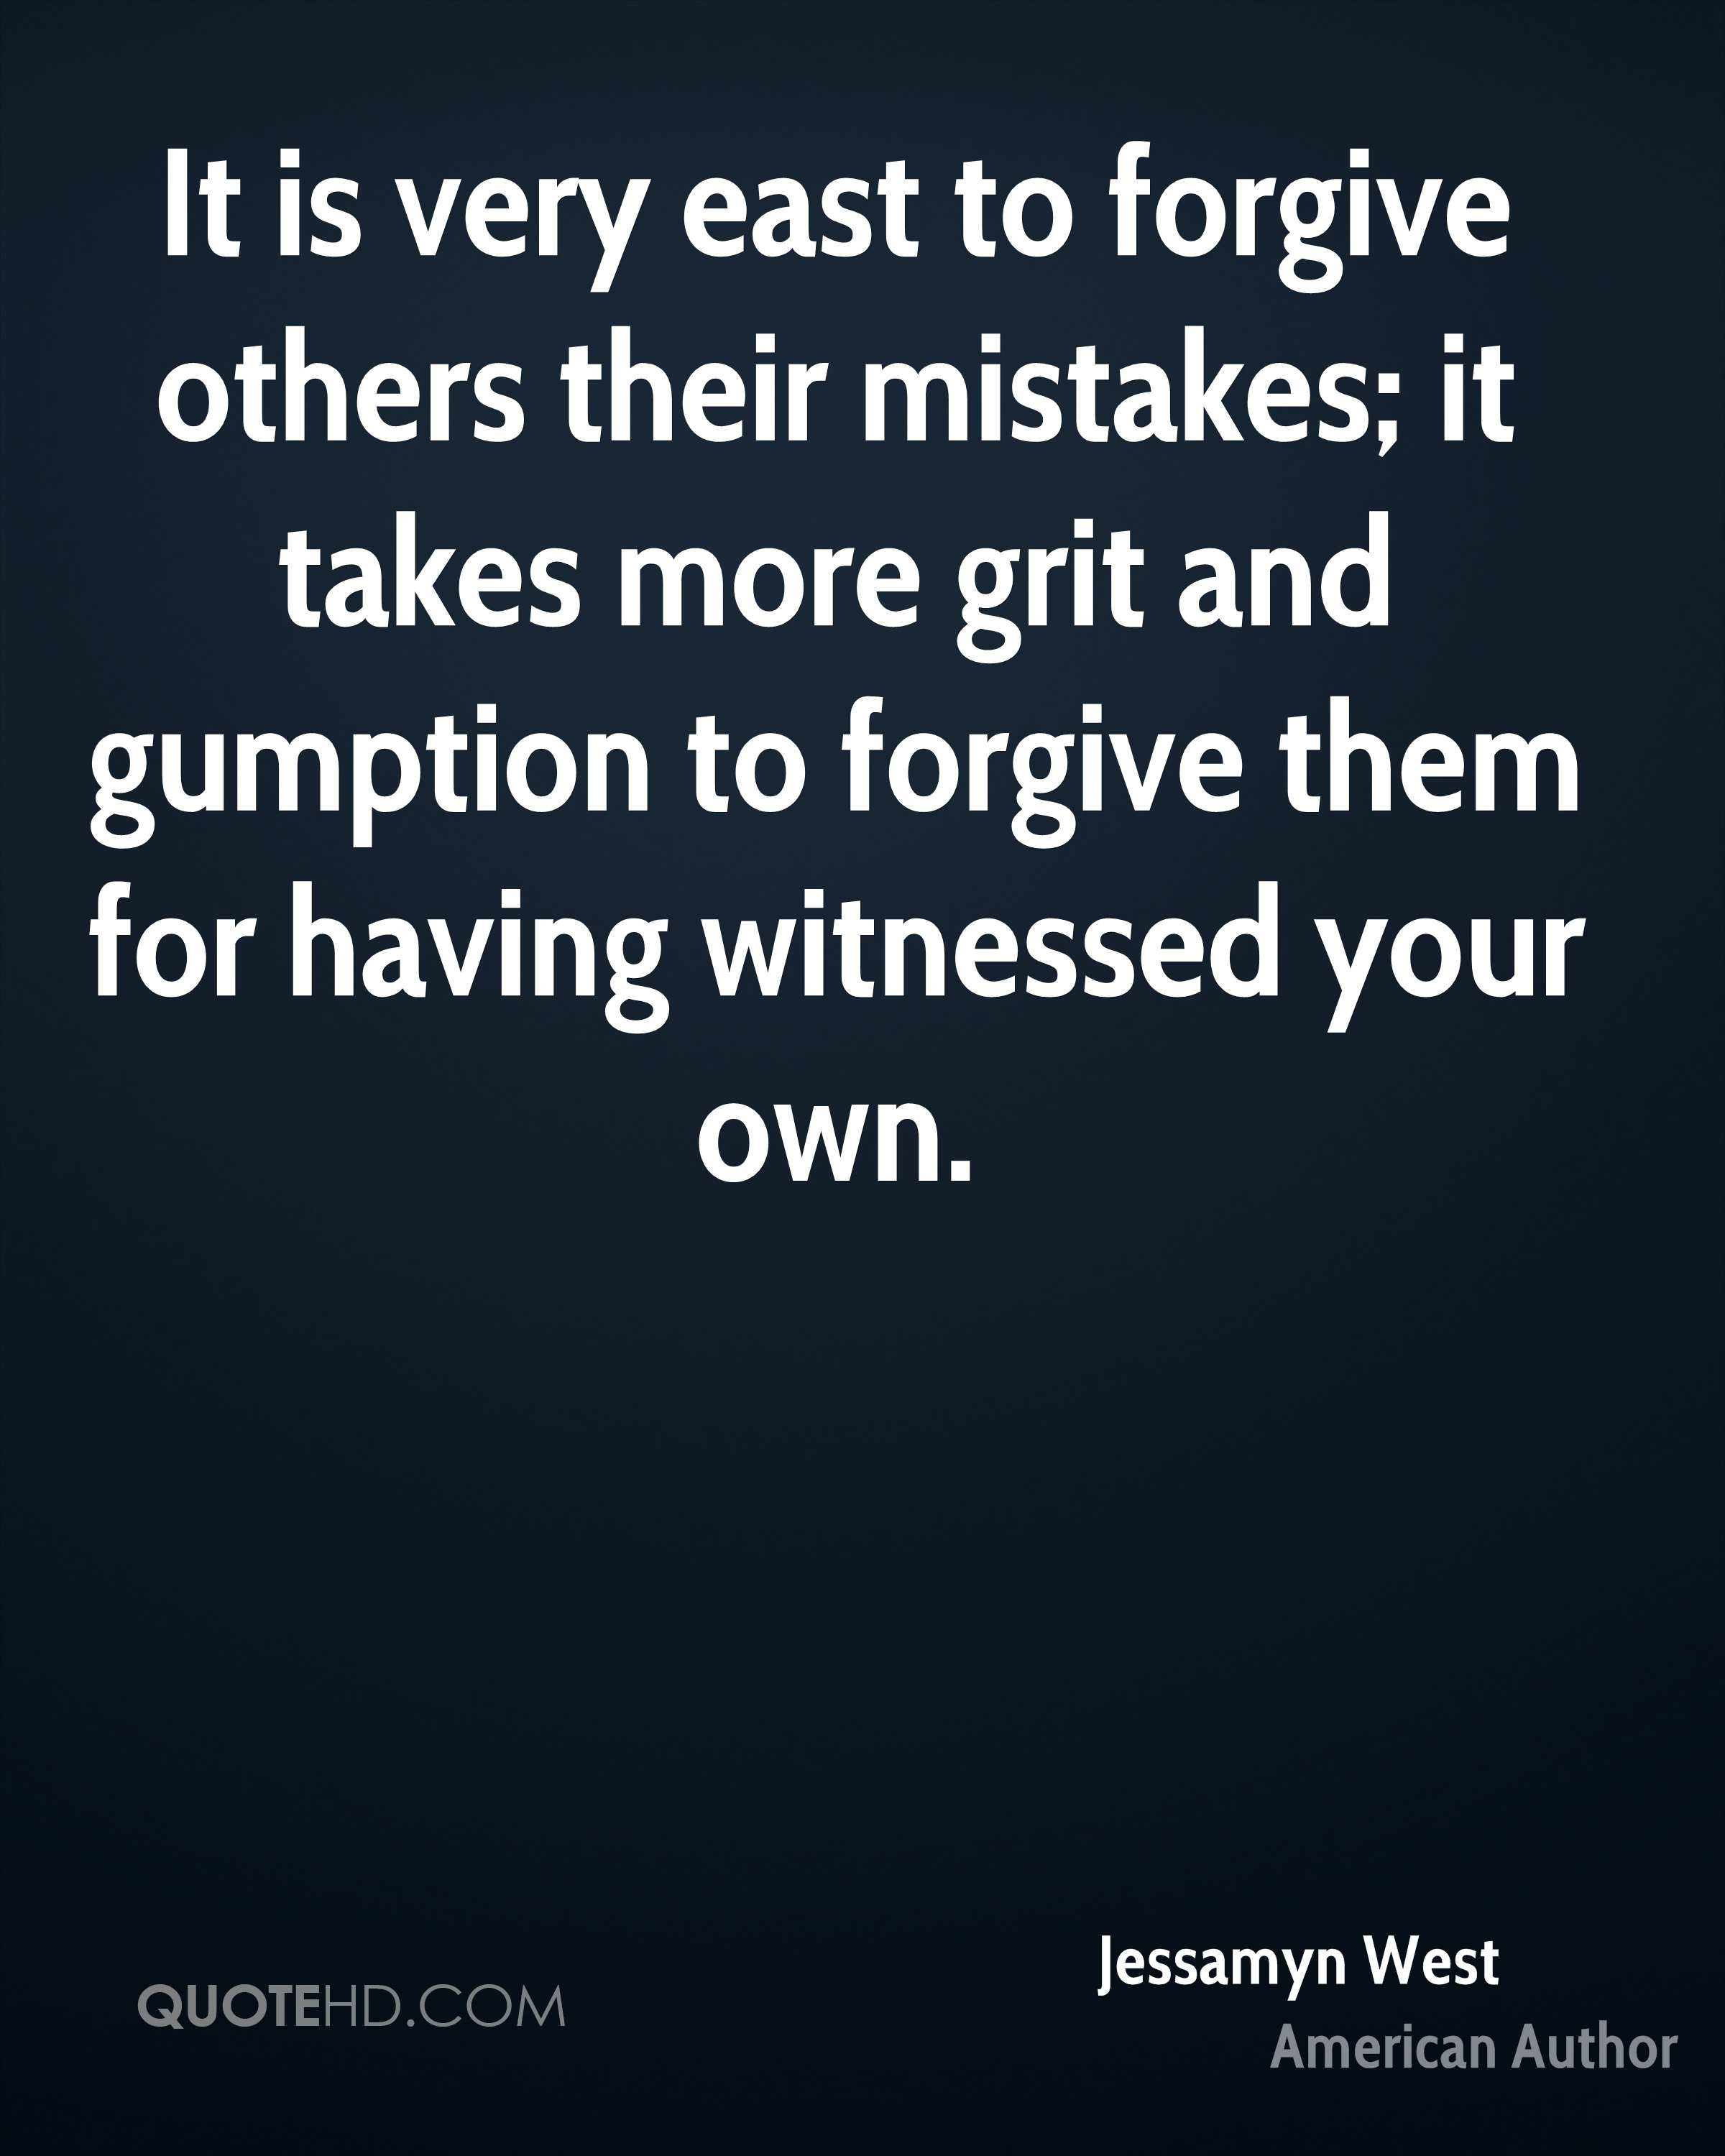 Jessamyn West Forgiveness Quotes Quotehd